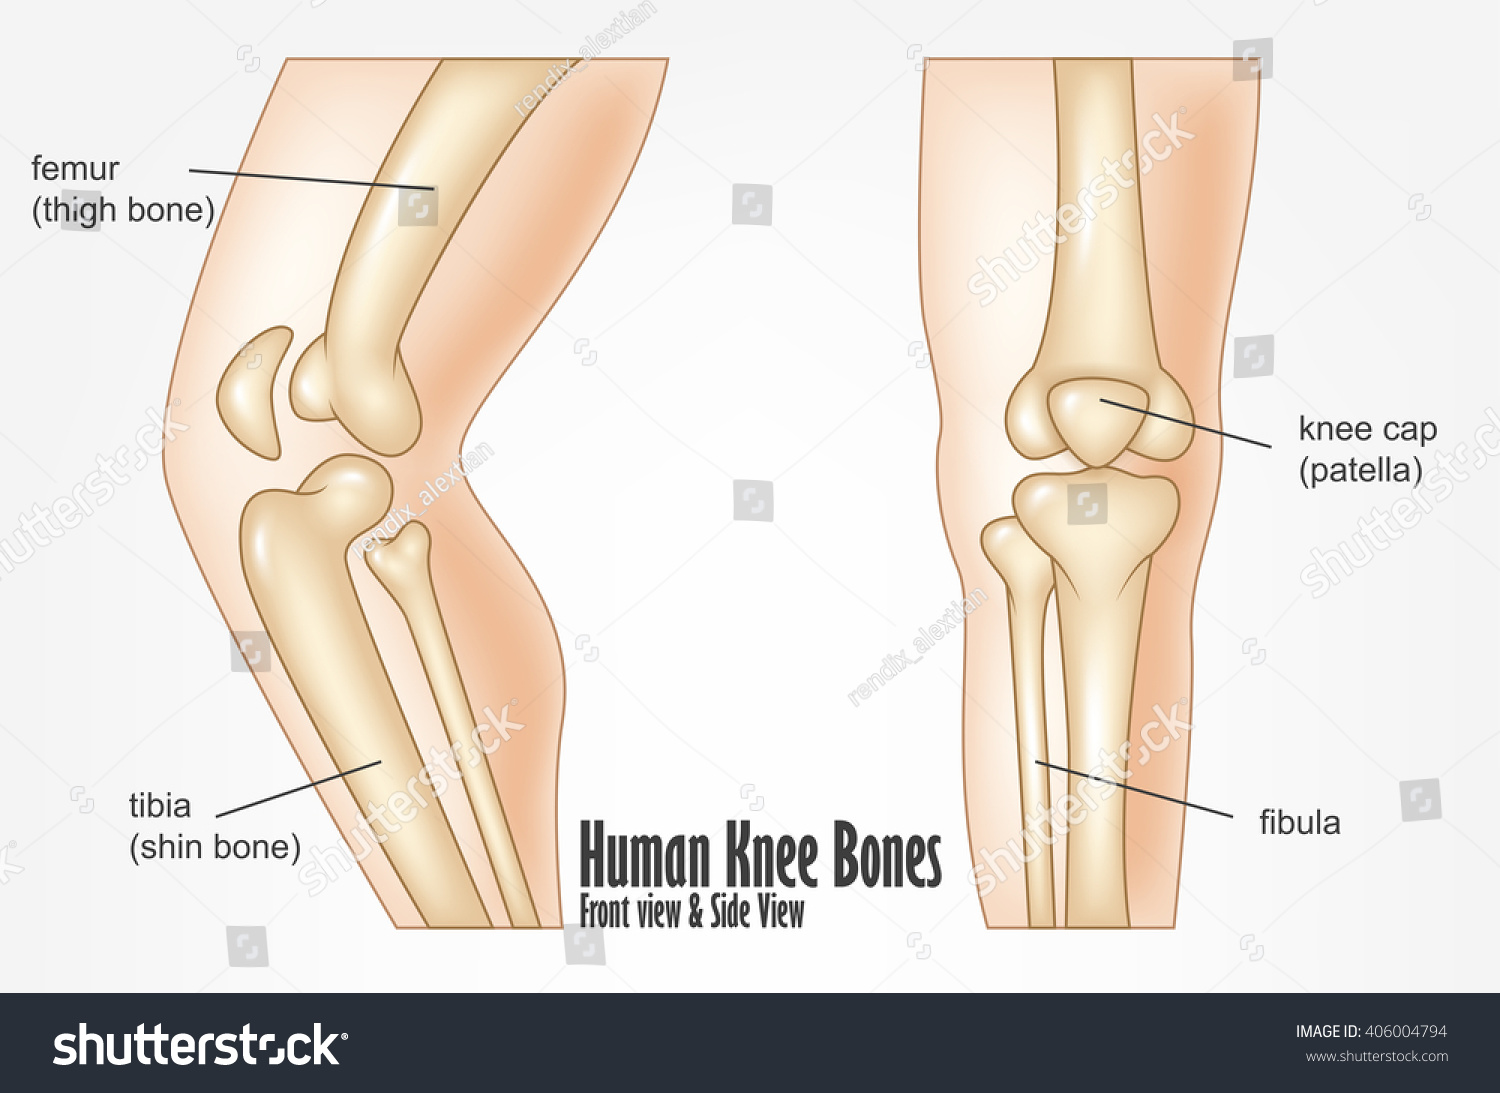 Royalty Free Human Knee Bones Front And Side View 406004794 Stock